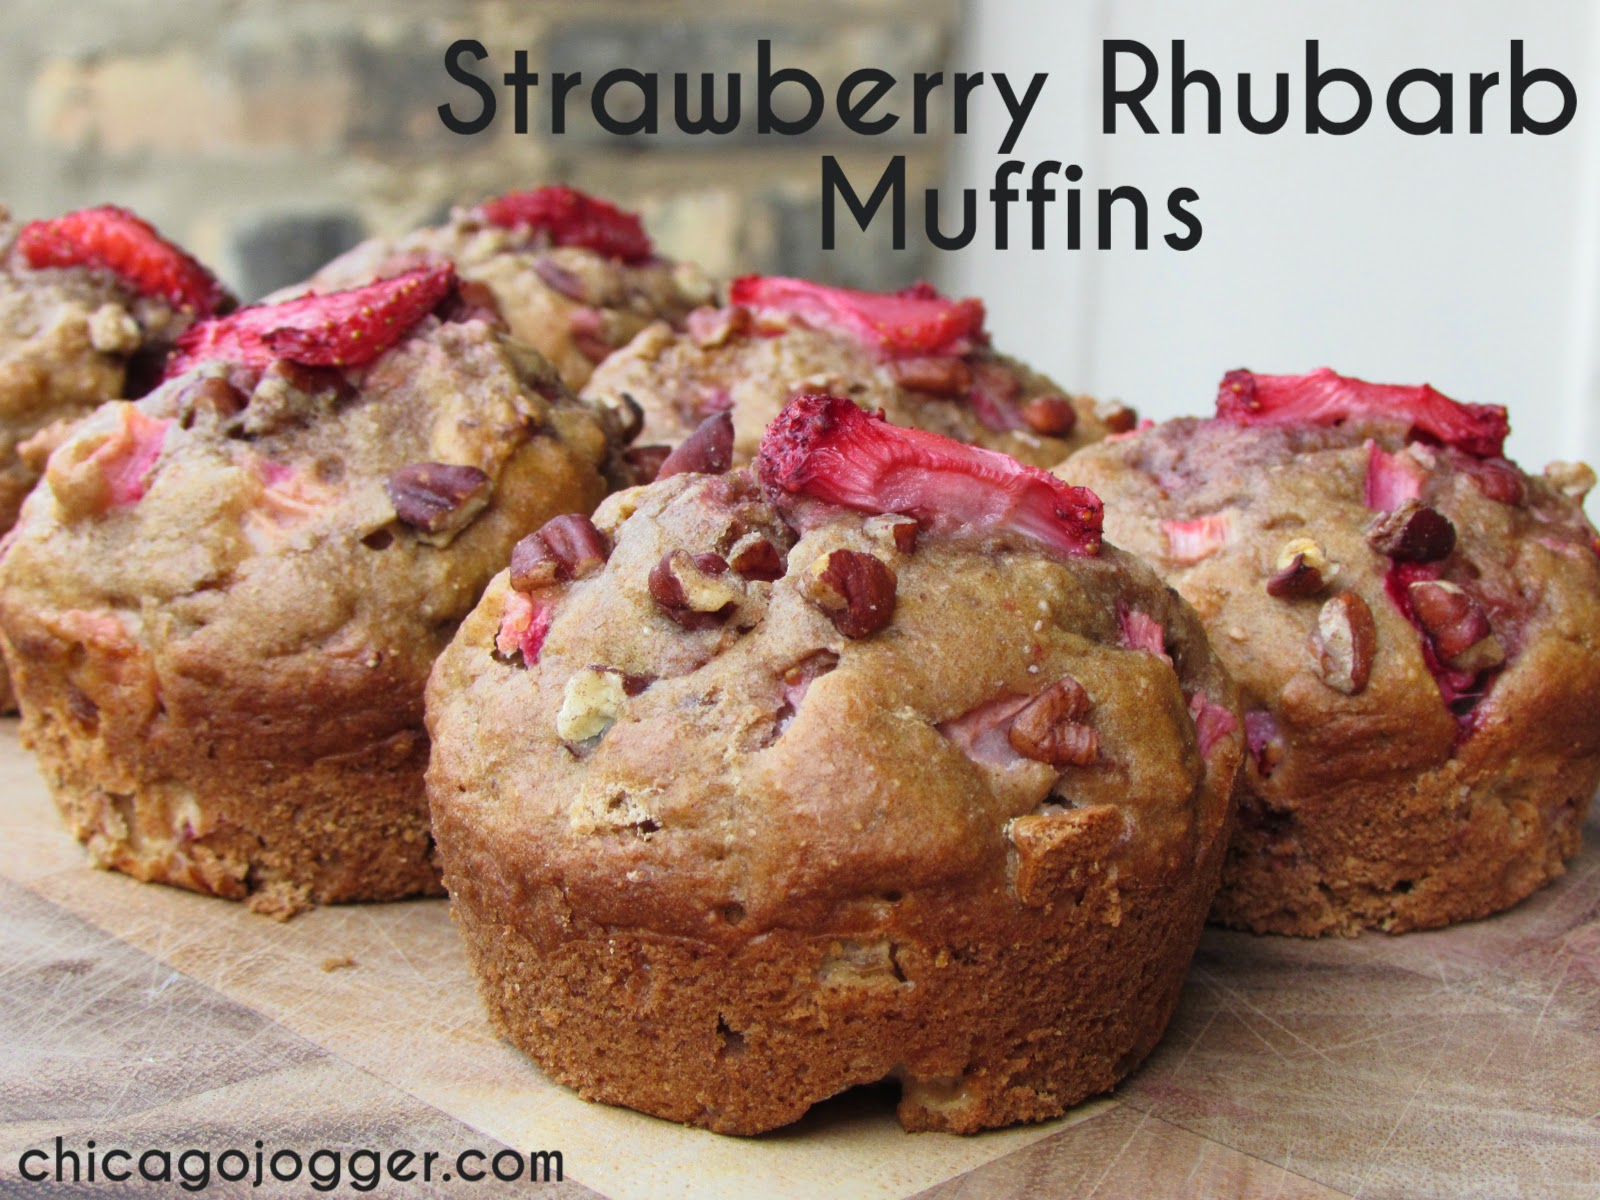 Chicago Jogger: Strawberry-Rhubarb Muffins.